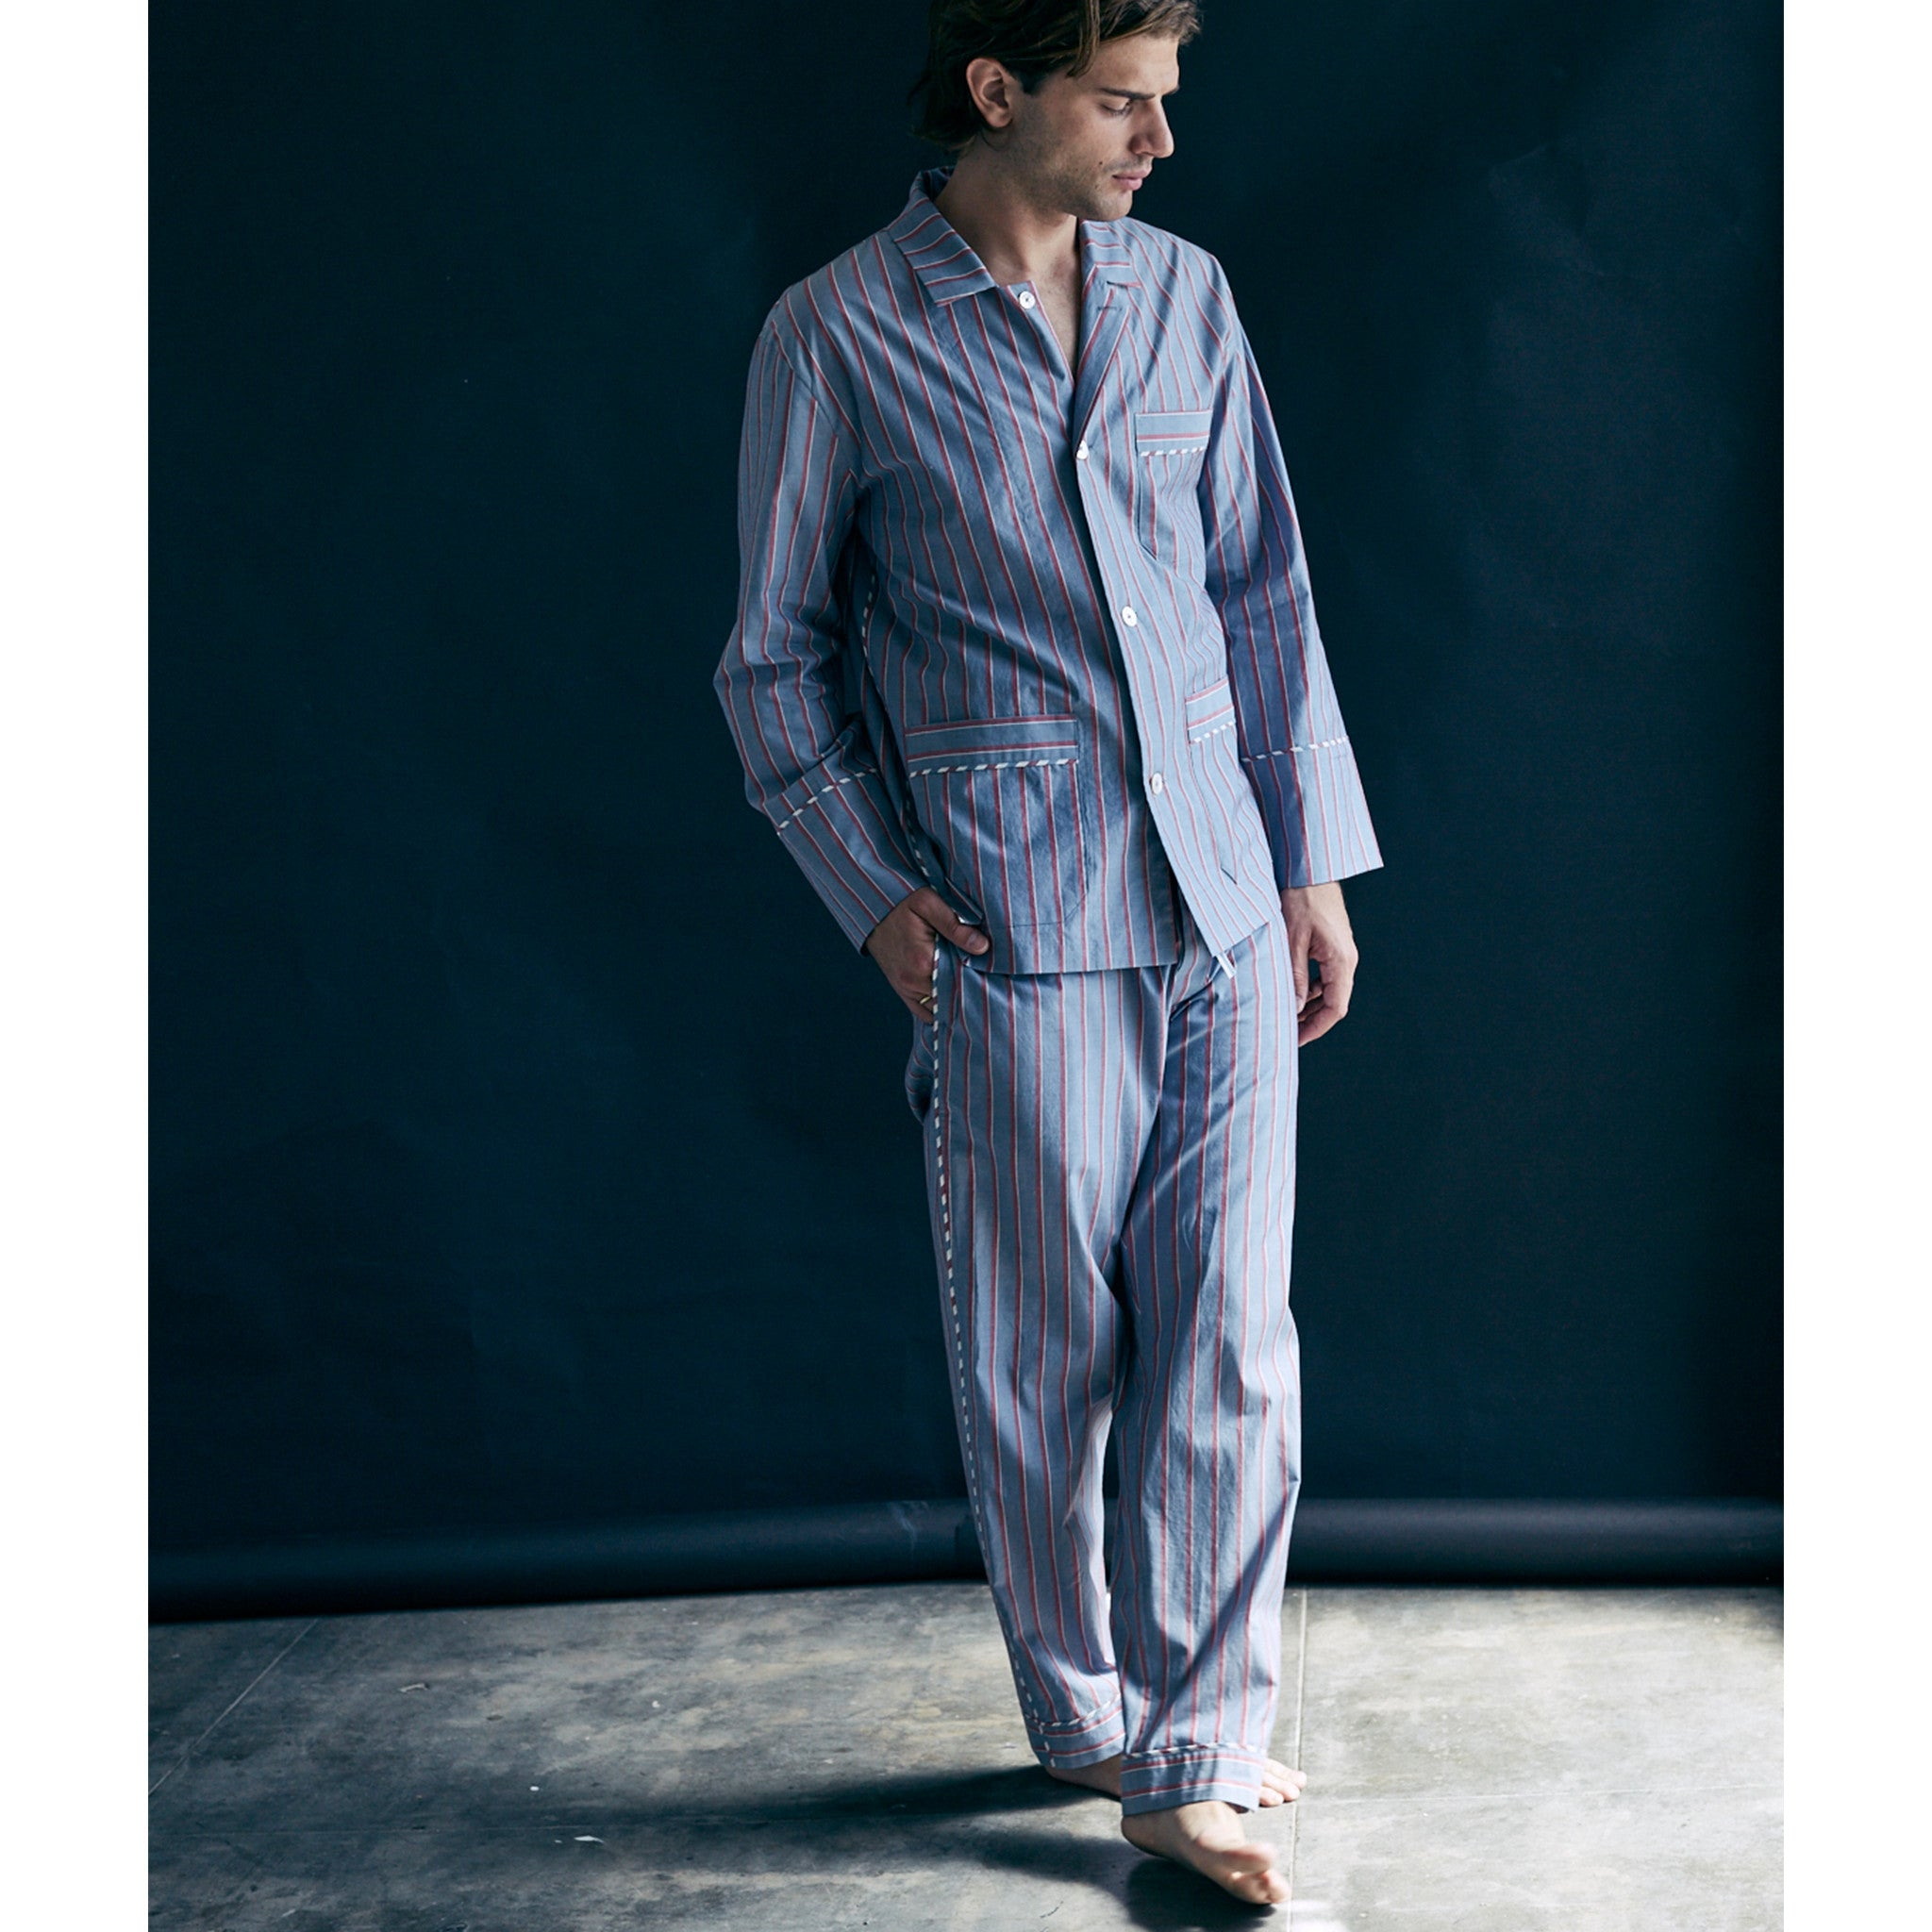 Hyperion Pajama Shirt in Grey with Red Stripe Italian Cotton